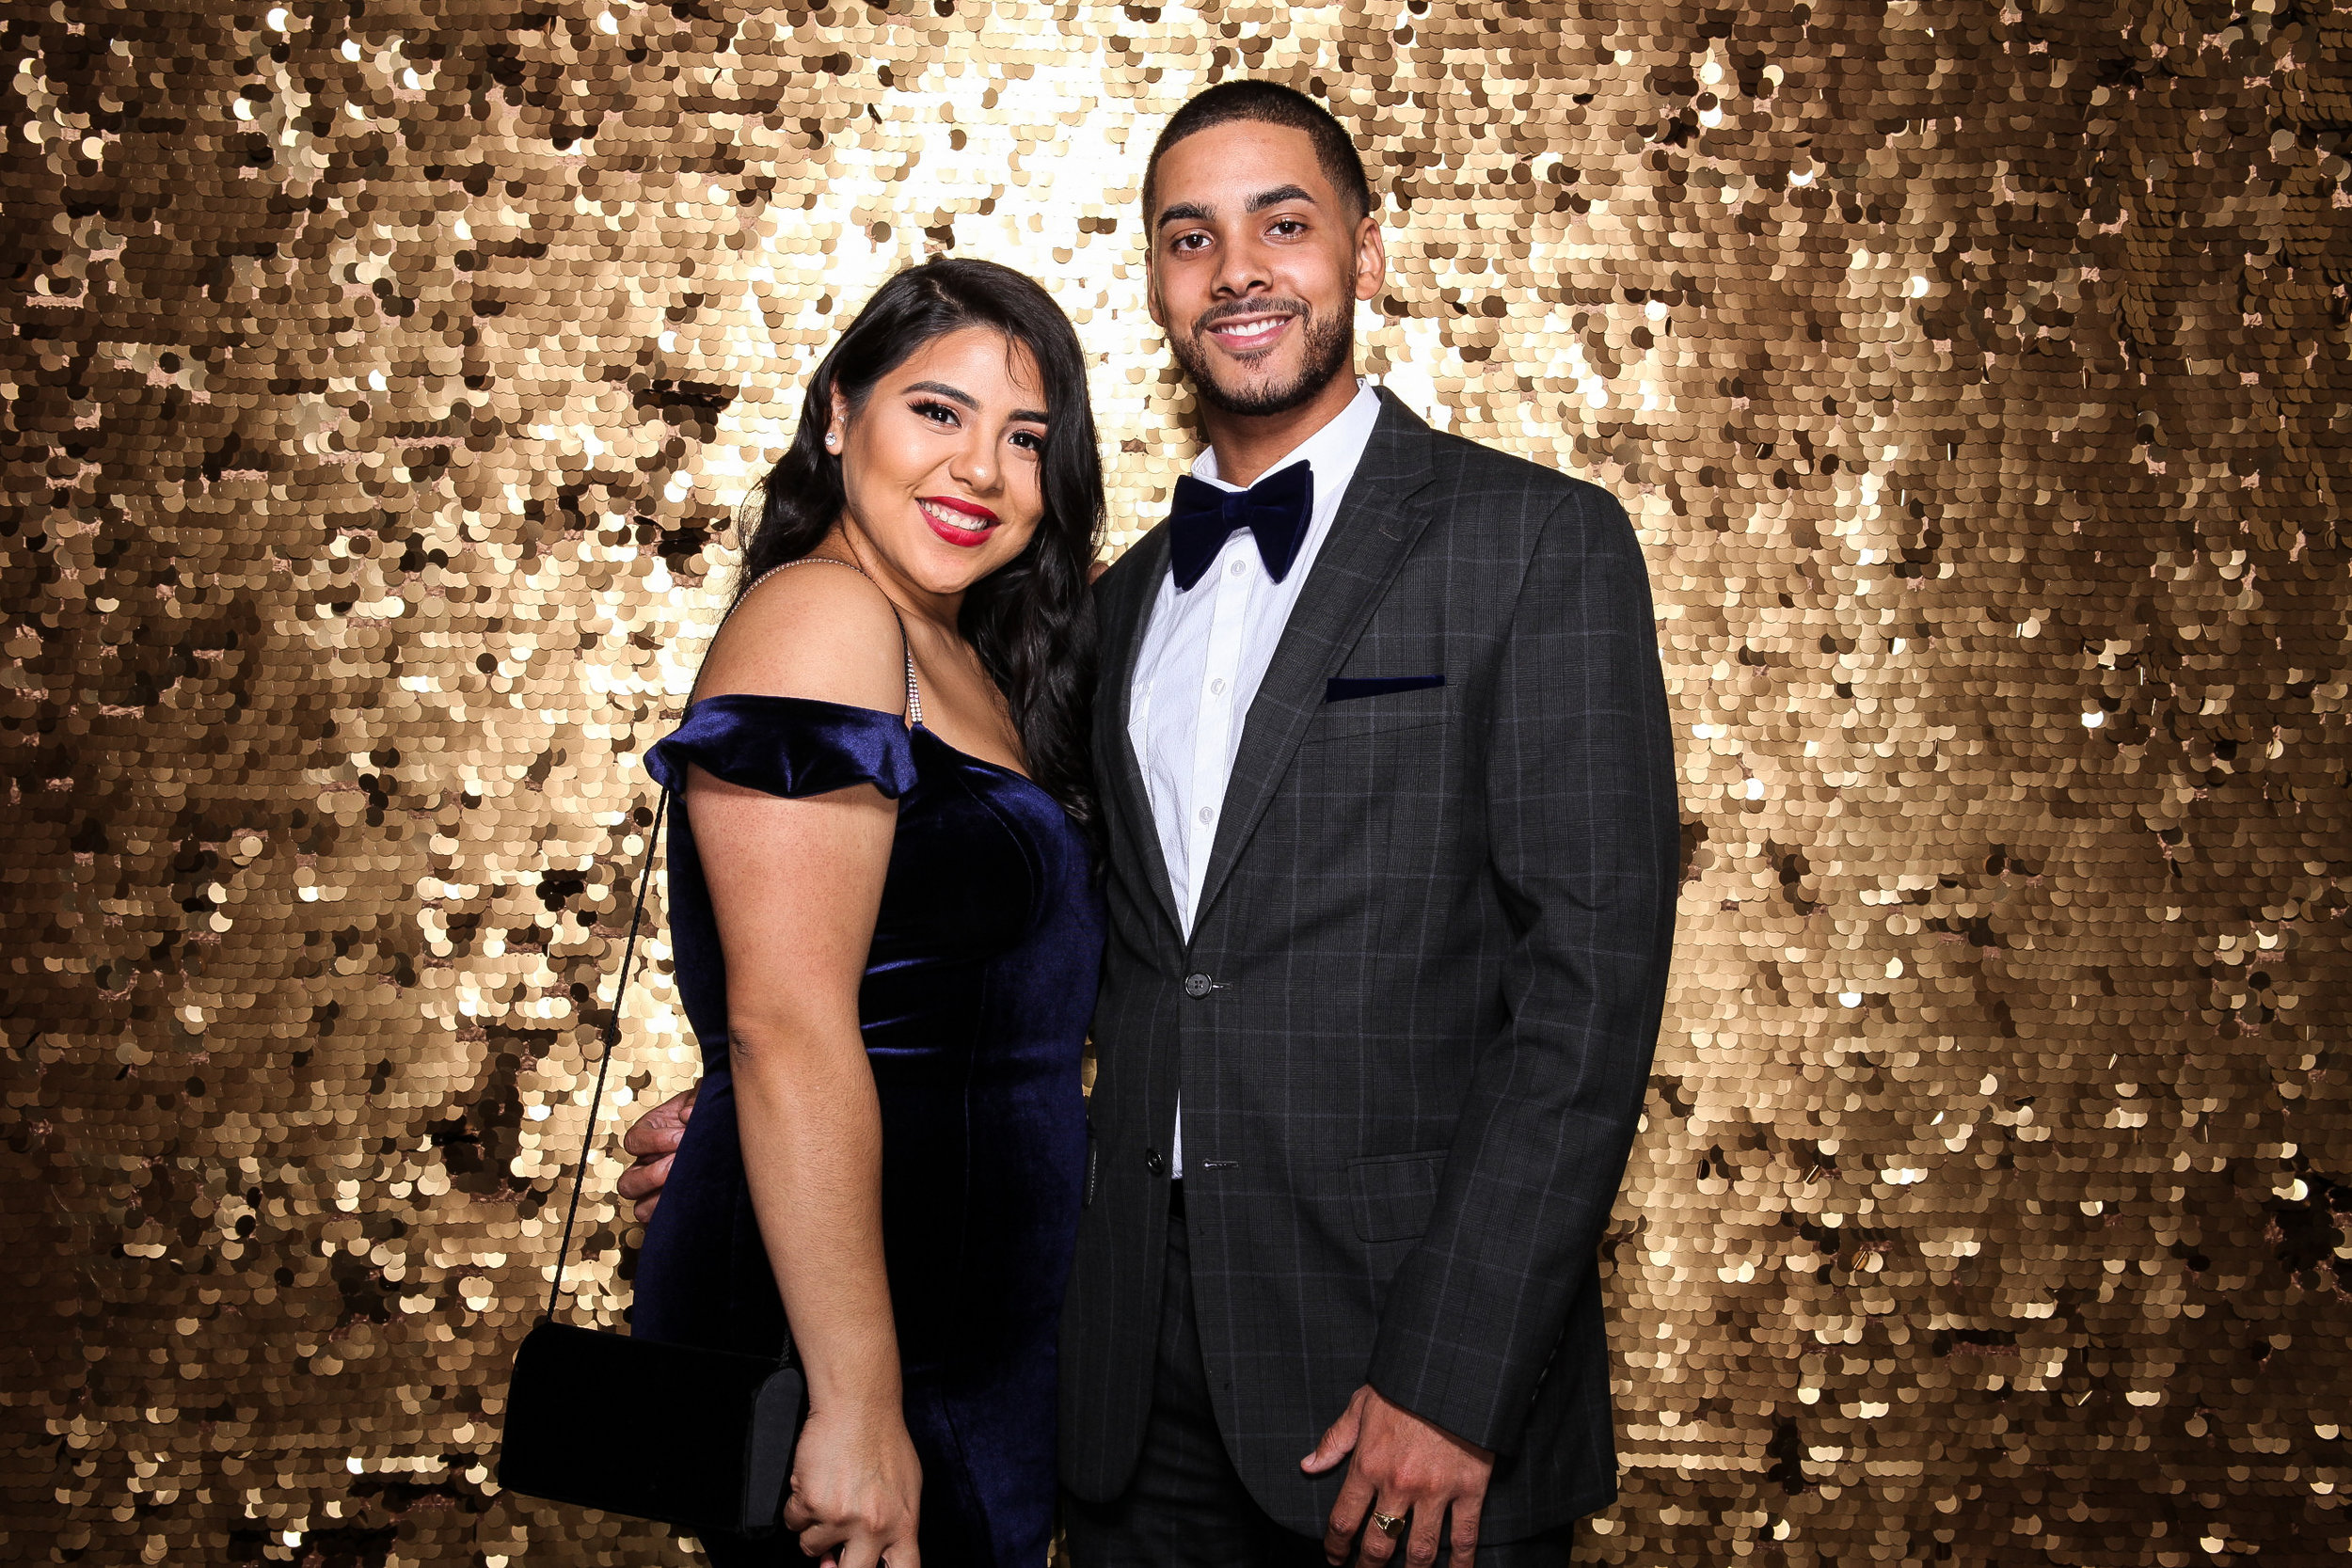 20190503_Adelphi_Senior_Formal-162.jpg